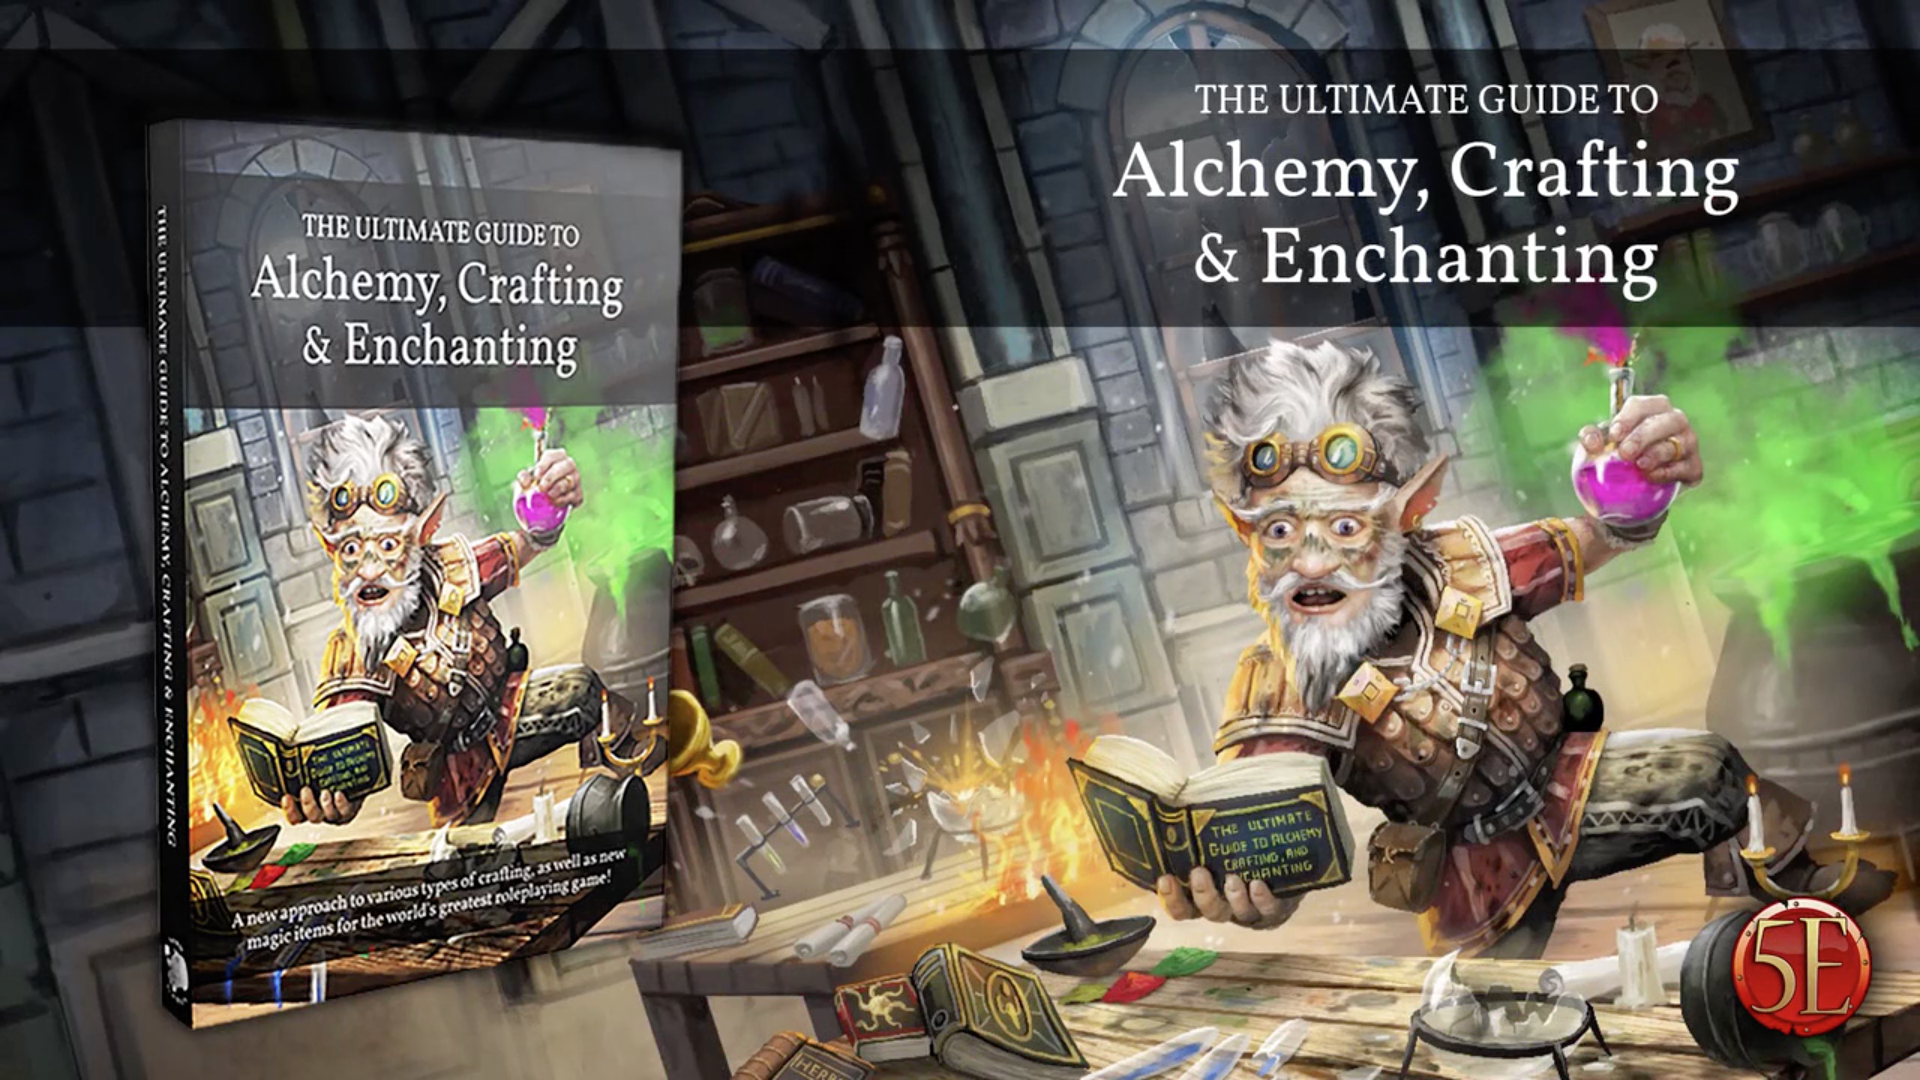 The Ultimate Guide to Alchemy, Crafting & Enchanting for 5E.png